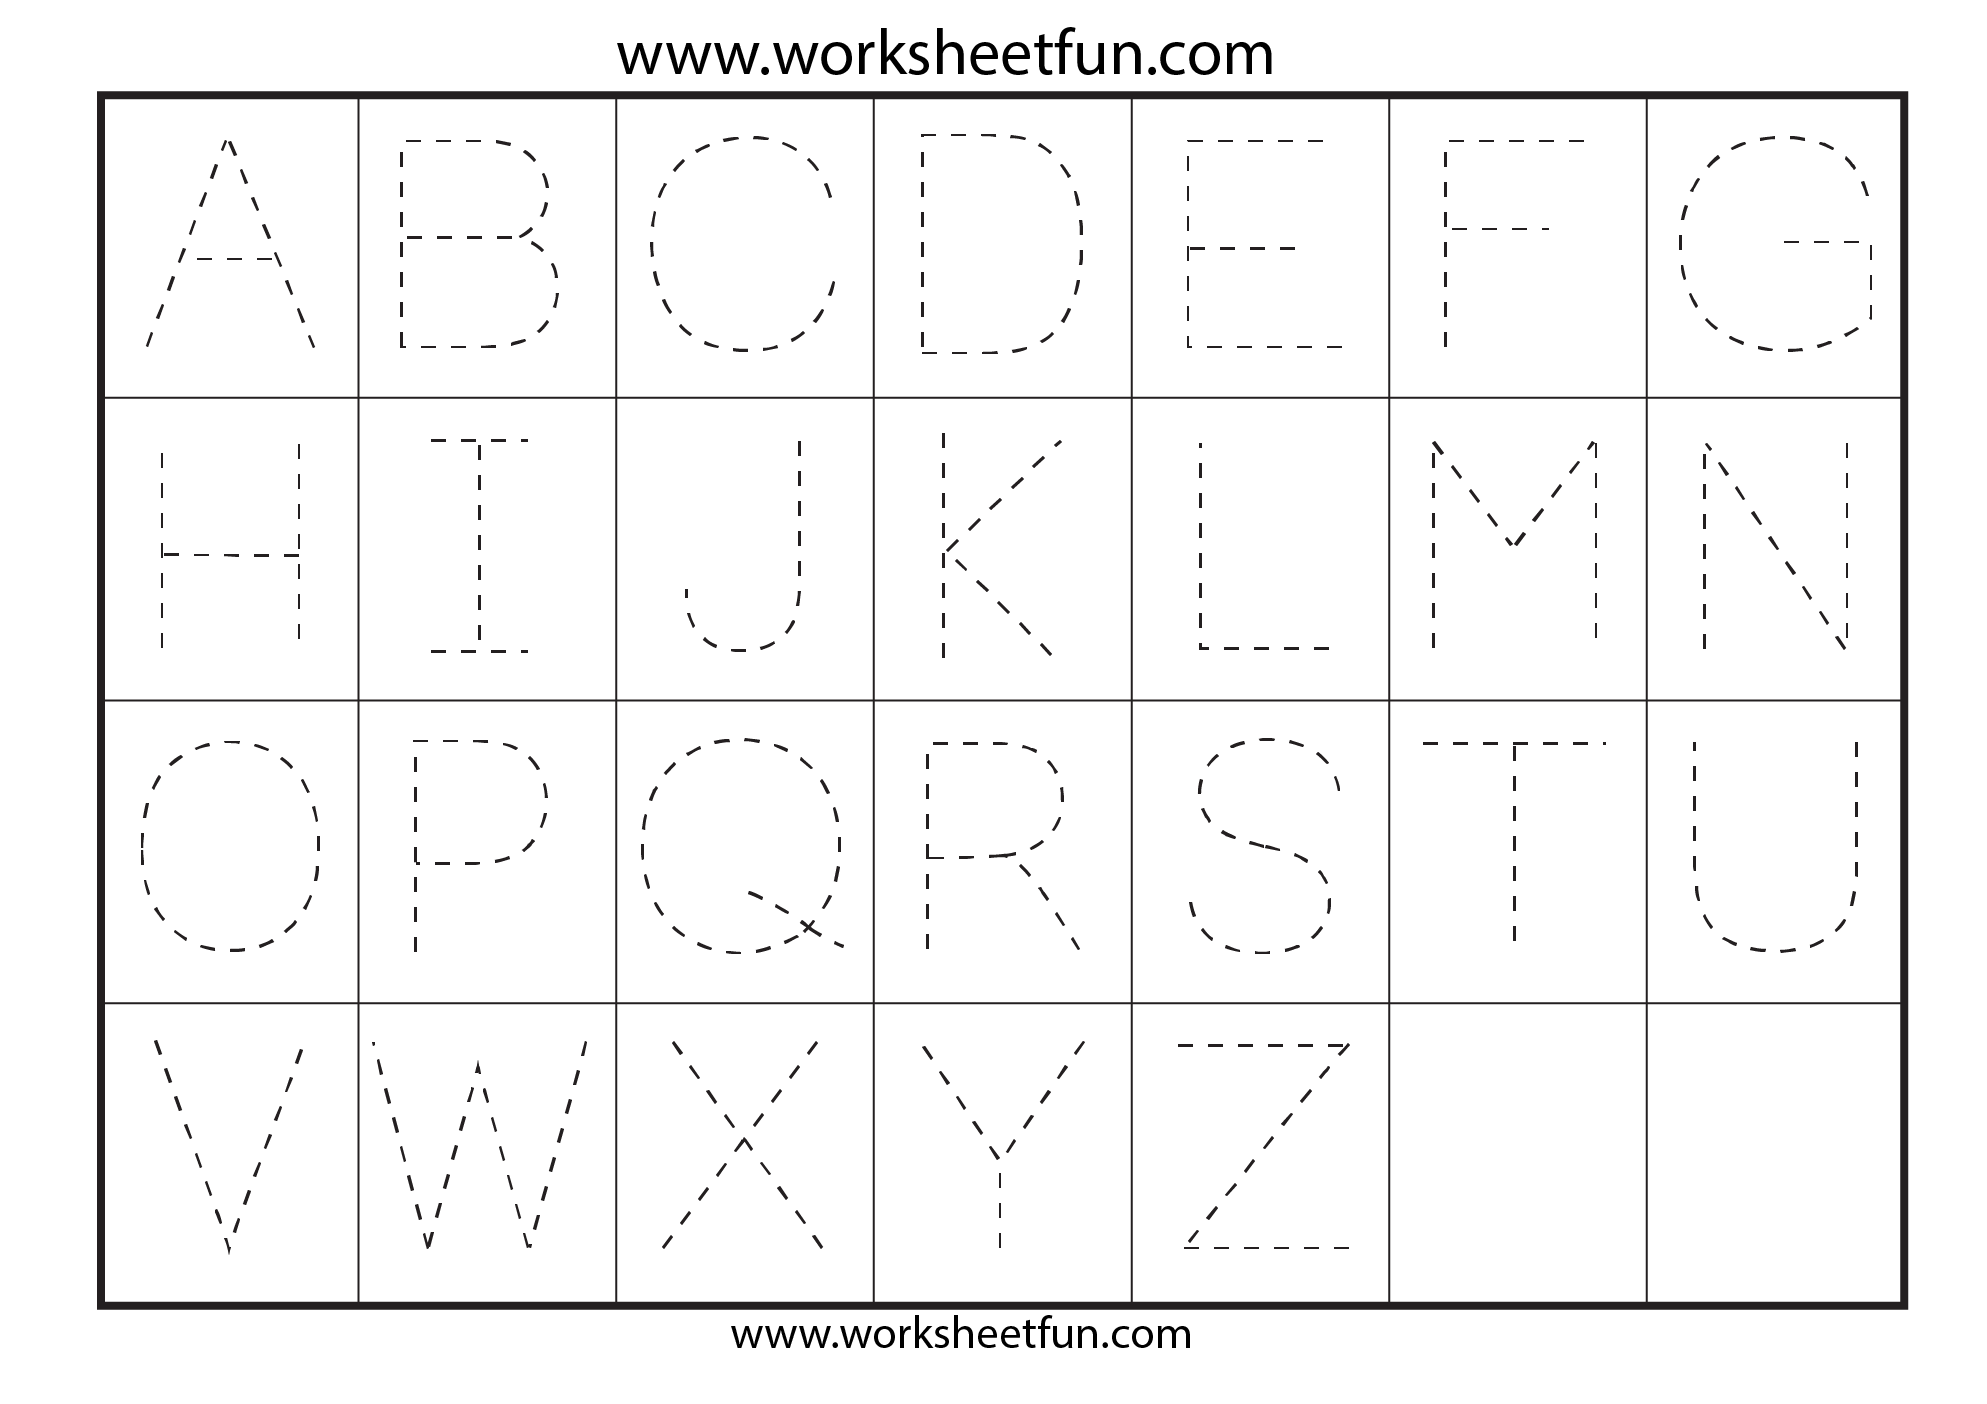 Letter Printable Images Gallery Category Page 9